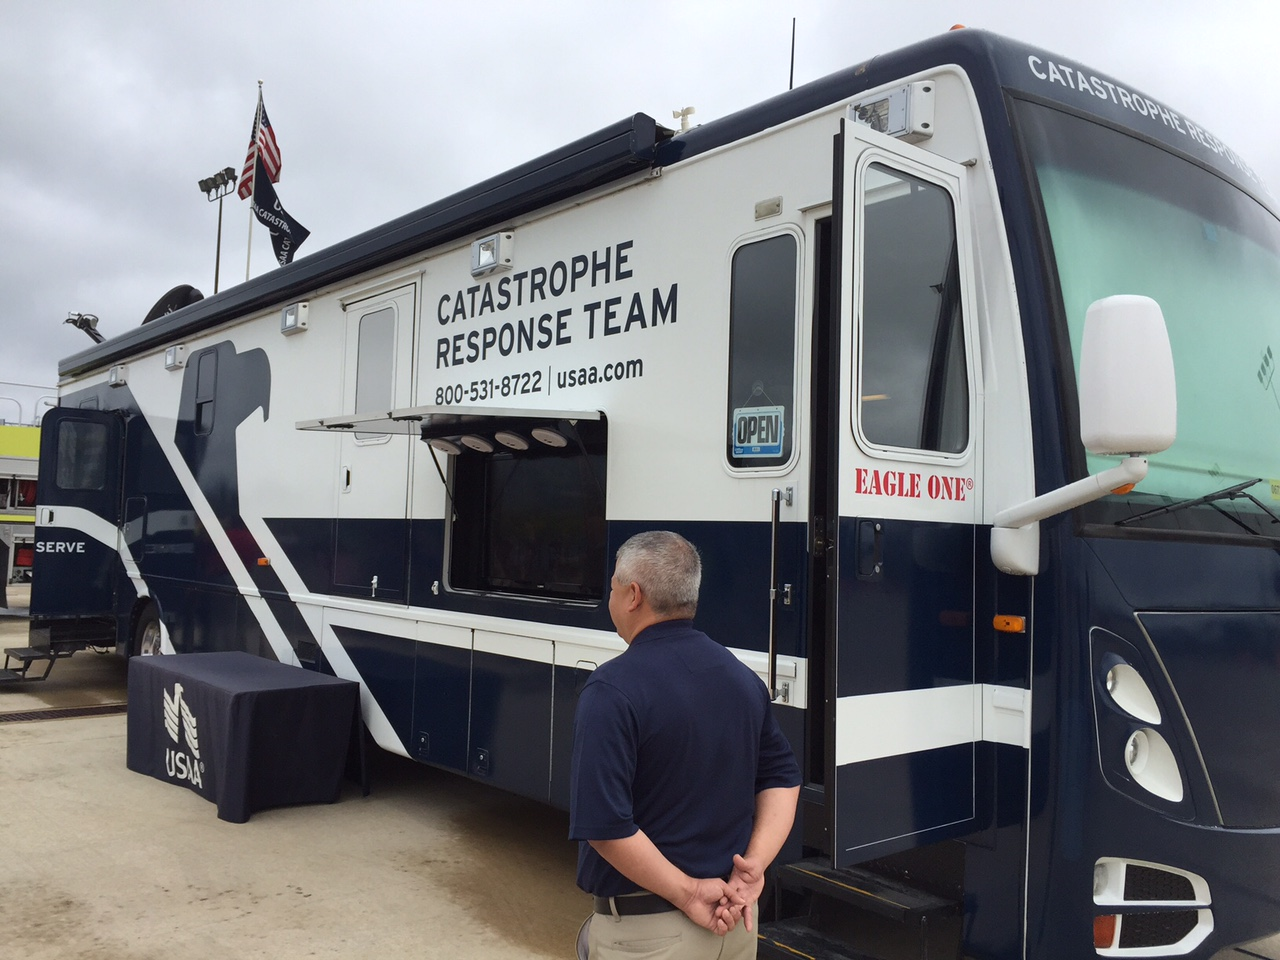 A USAA mobile-claims unit, ready to help customers file insurance claims. Image credit: Weather.blog